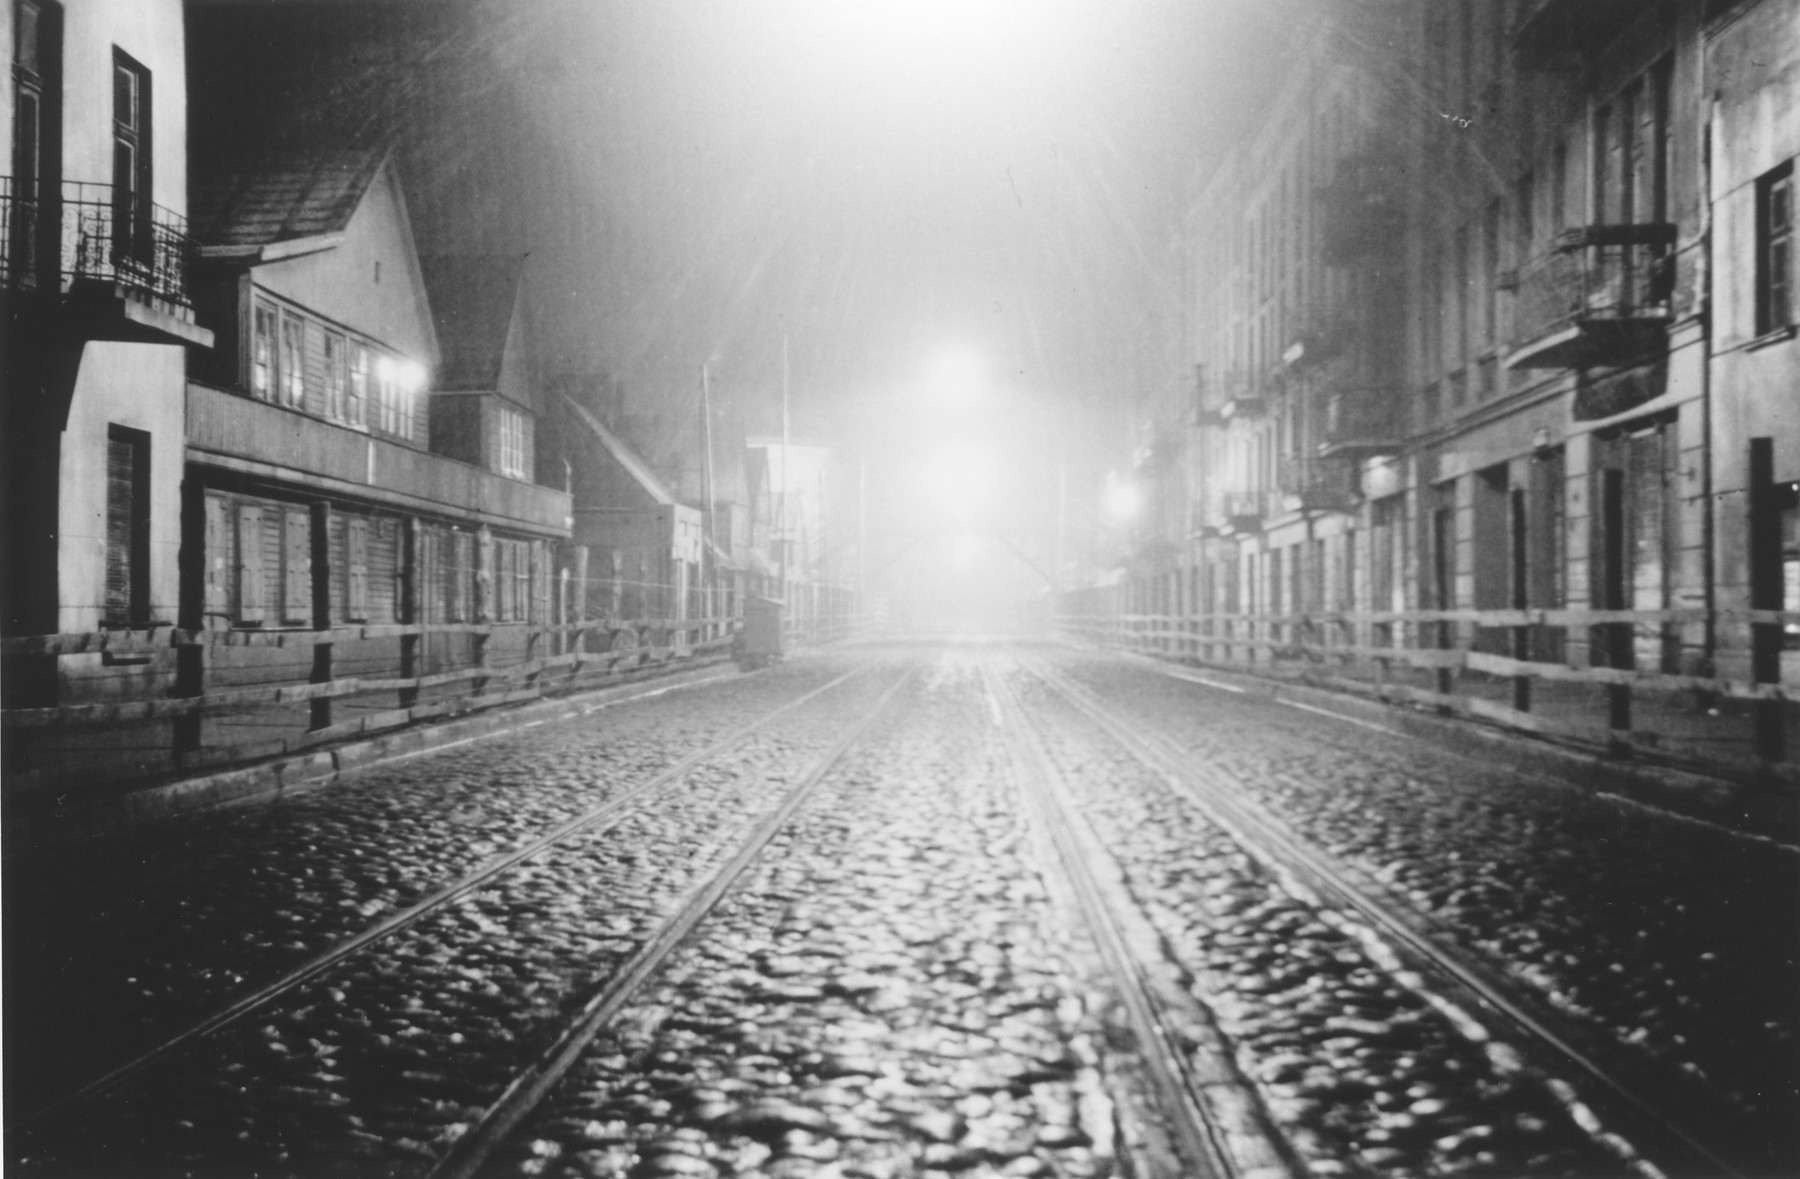 Night-time view of one of the thoroughfares that ran through the Lodz ghetto.  The photograph was probably taken by a member of Police Battalion 101.  The Lodz ghetto was divided into three sectors by two major throughfares which passed through, but did not belong to the Jewish district.  Wooden and barbed wire fences prevented access to these main streets by ghetto residents.  But Jews were allowed to traverse the streets by means of two wooden pedestrian bridges, accessed by steep staircases.   One image from a photograph album belonging to a member of Police Battalion 101.